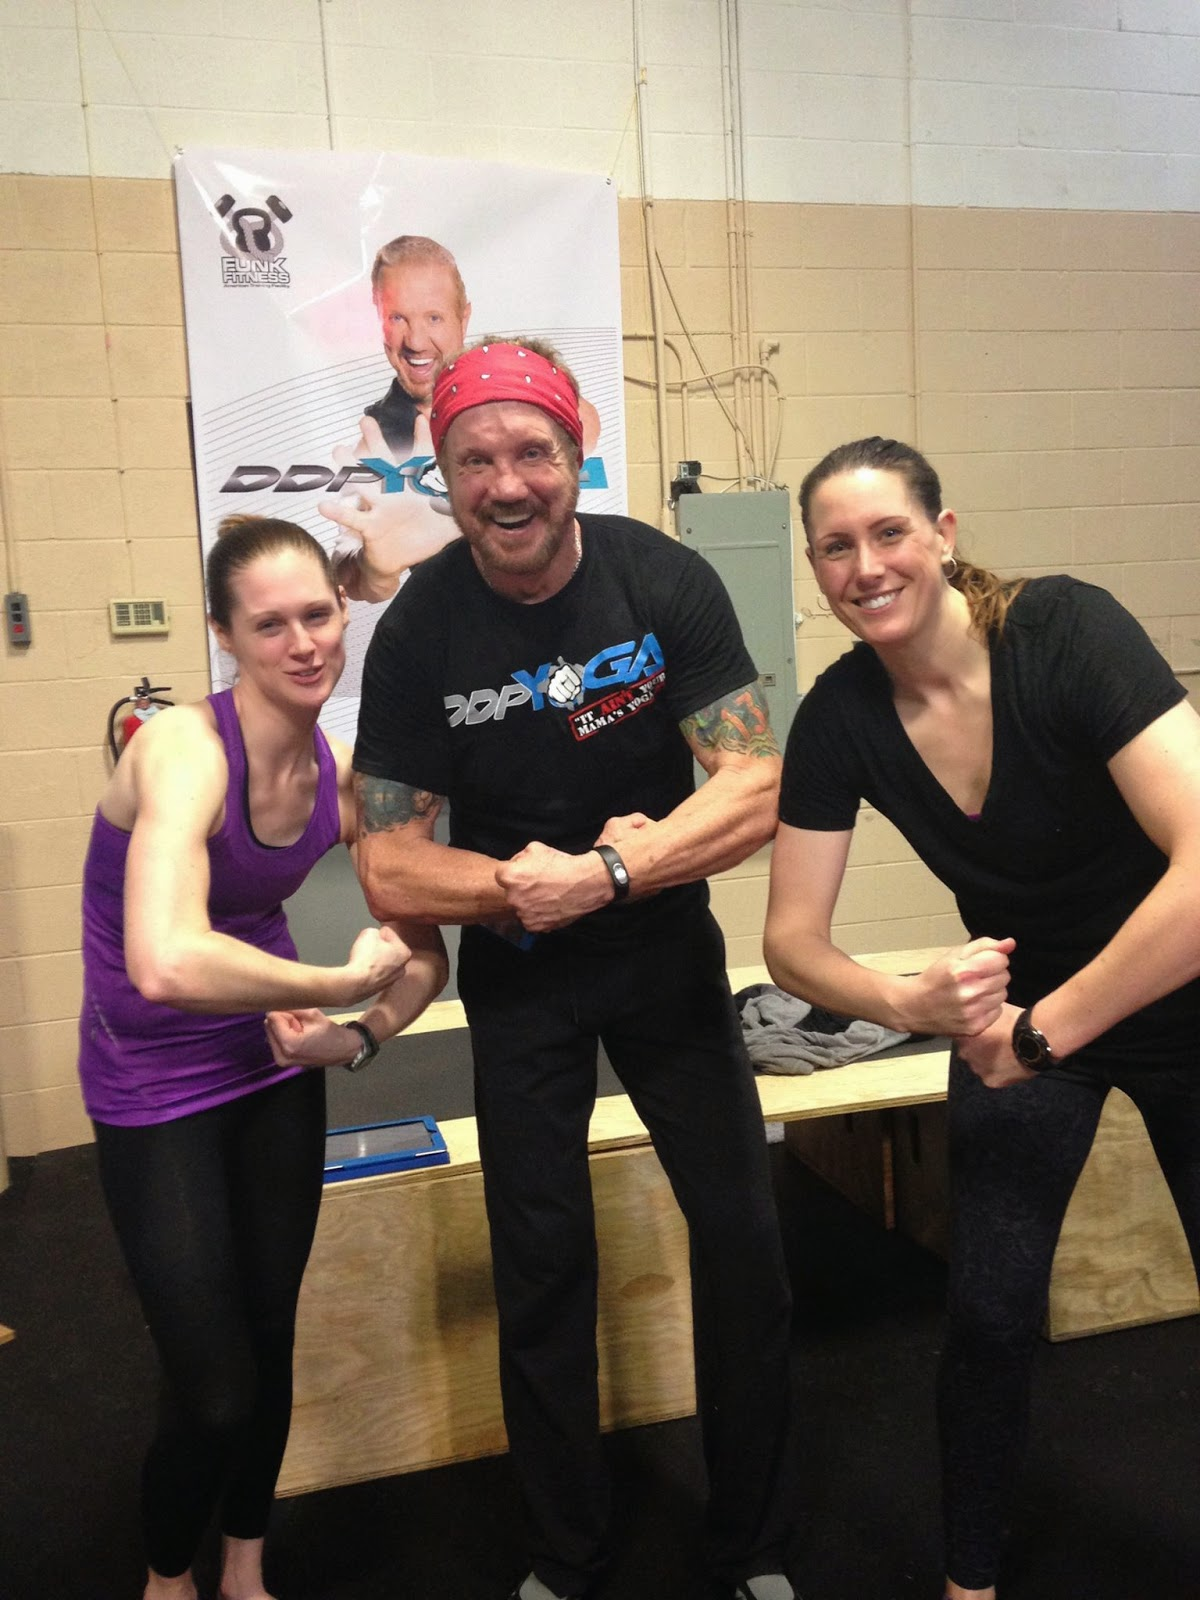 Dallas Page and DDPYoga